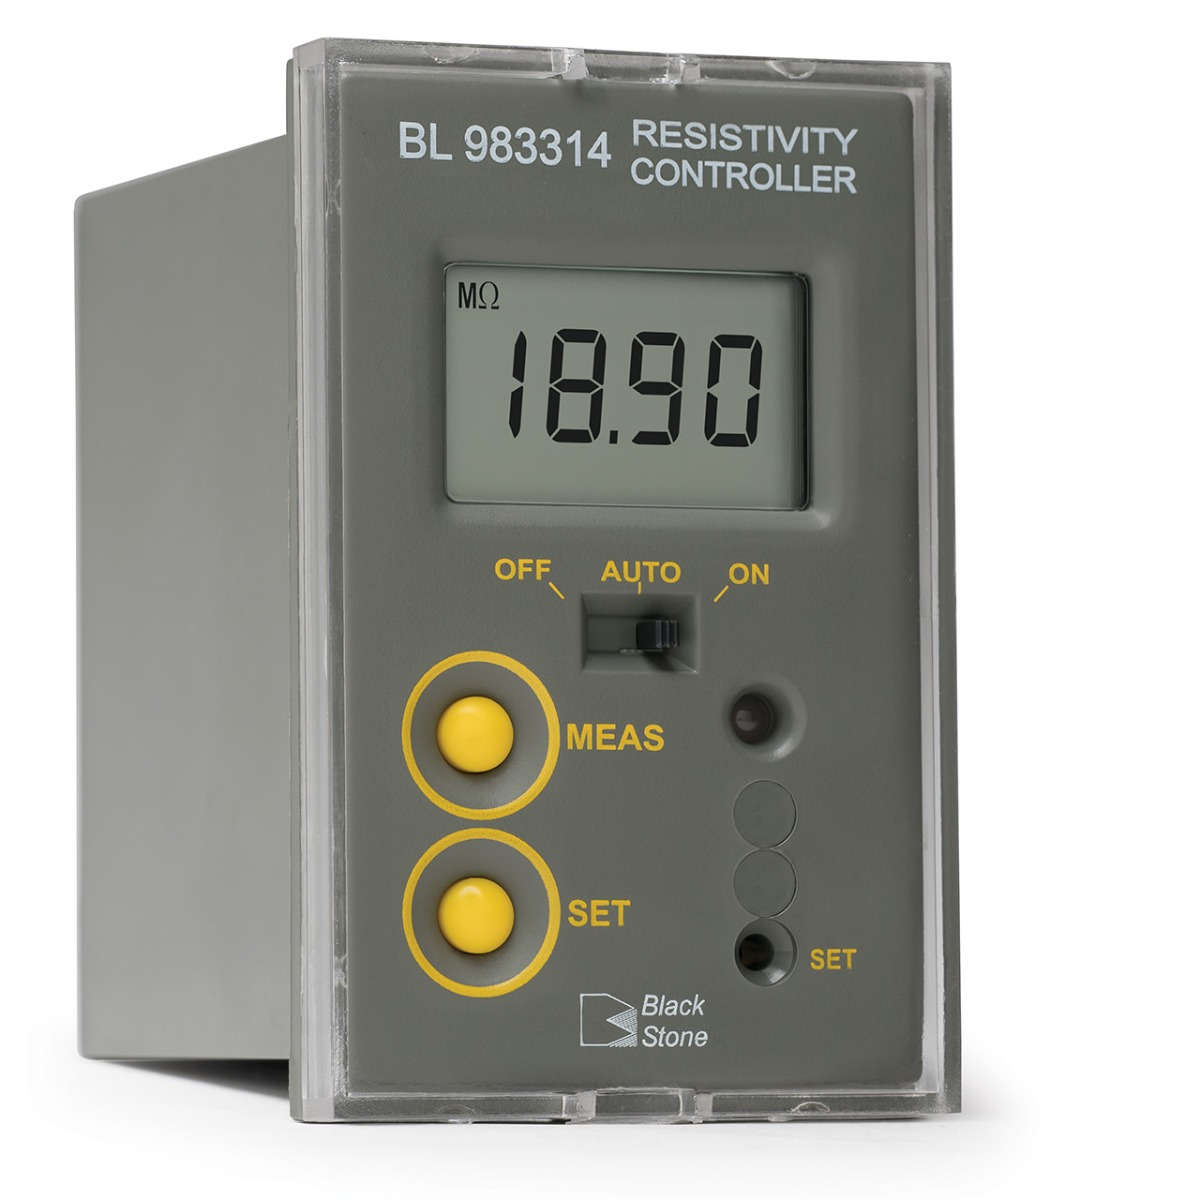 Resistivity Mini Controller - BL983314